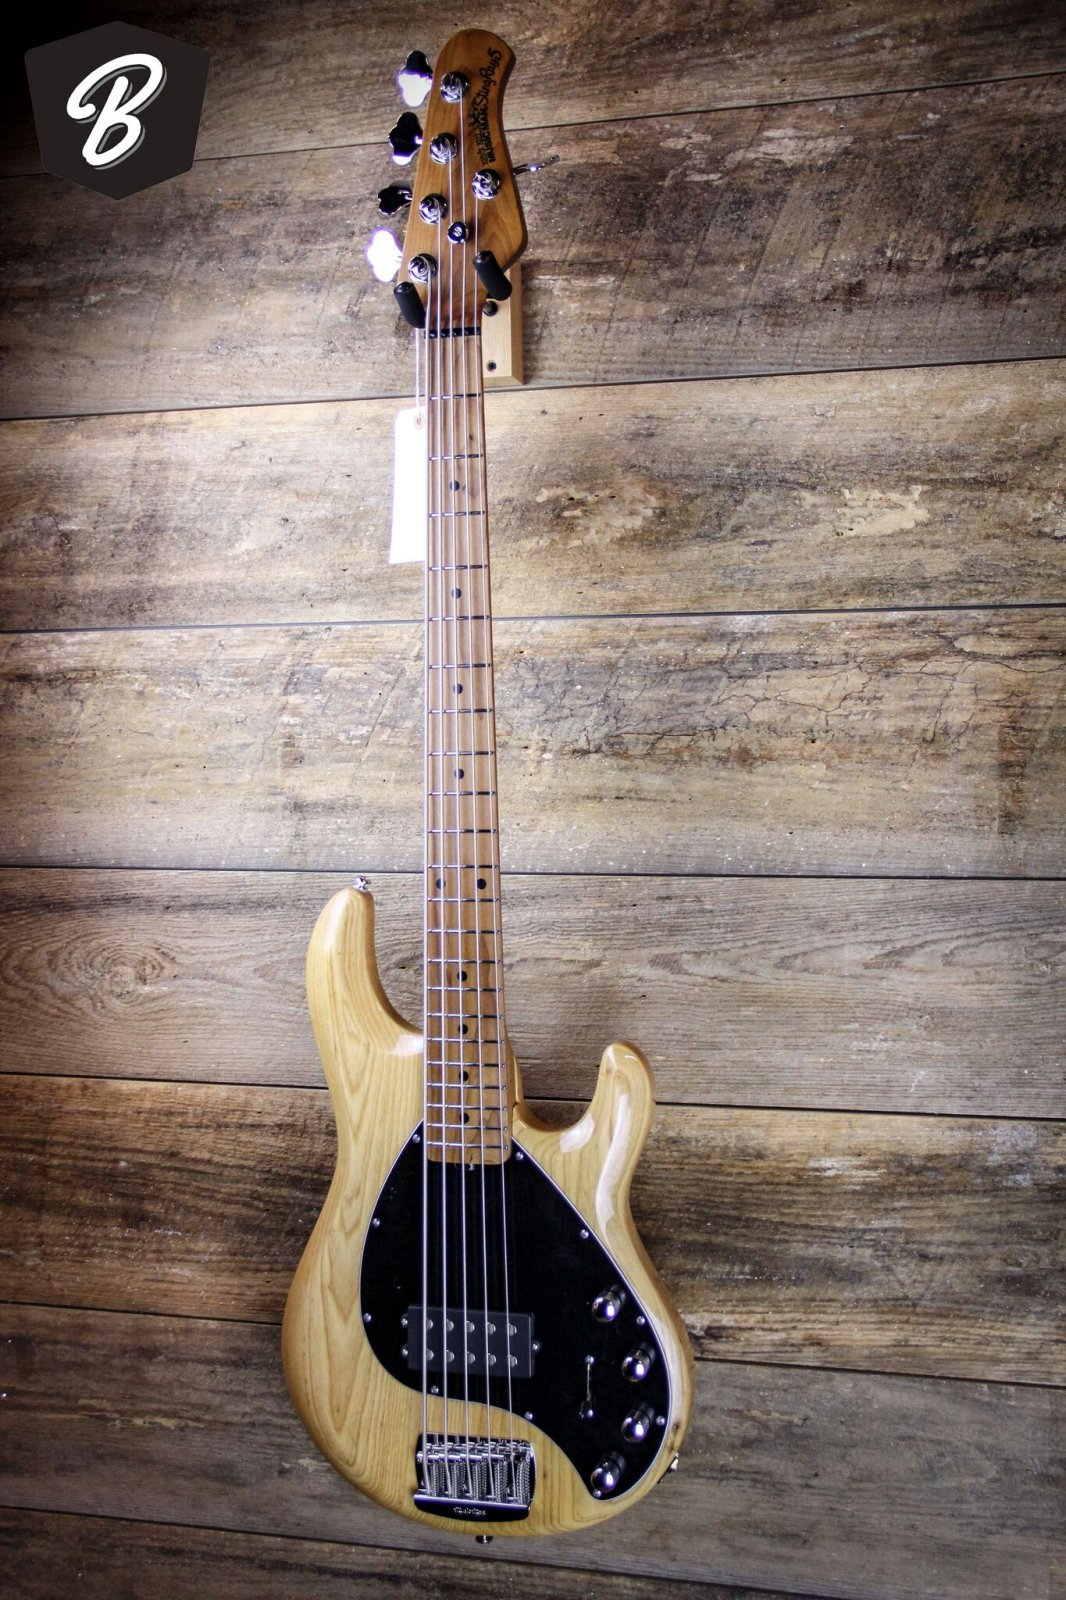 Ernie Ball Music Man Stingray 5 Special